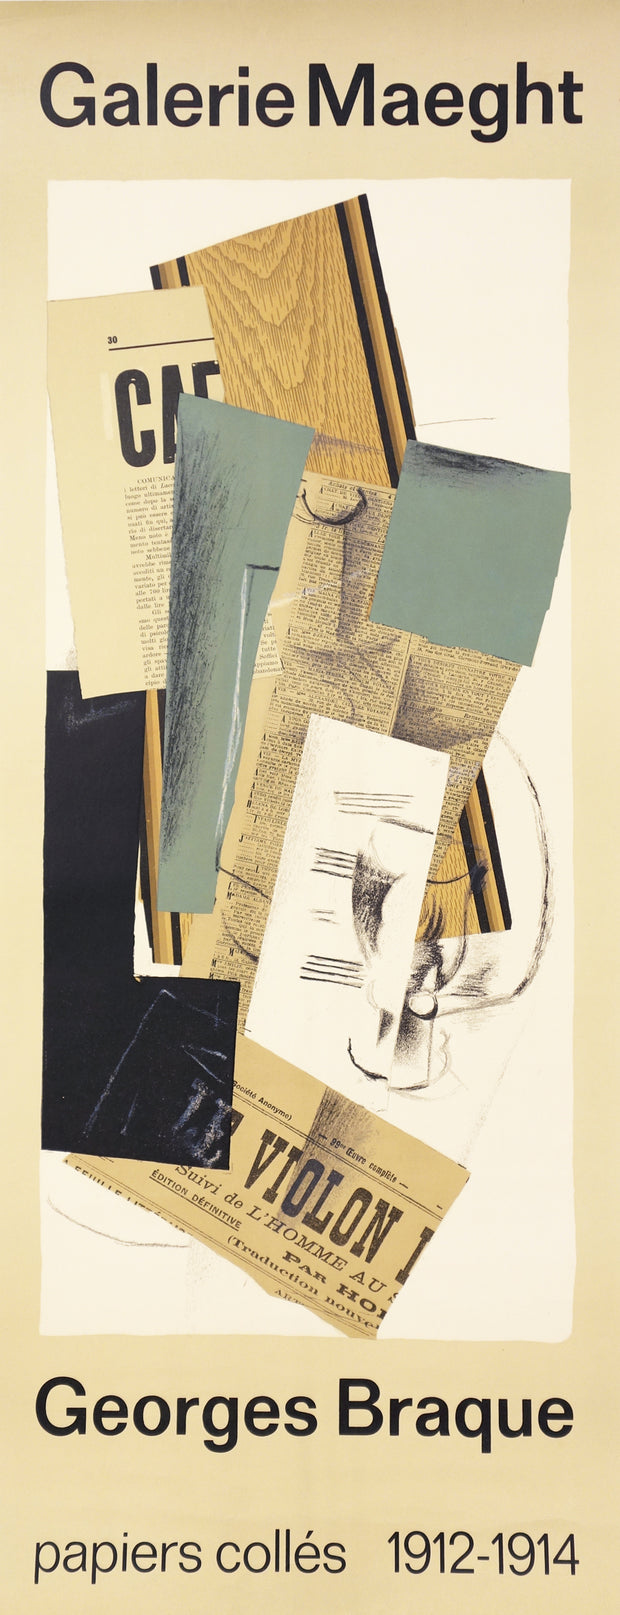 Papier Collés by Georges Braque - Davidson Galleries